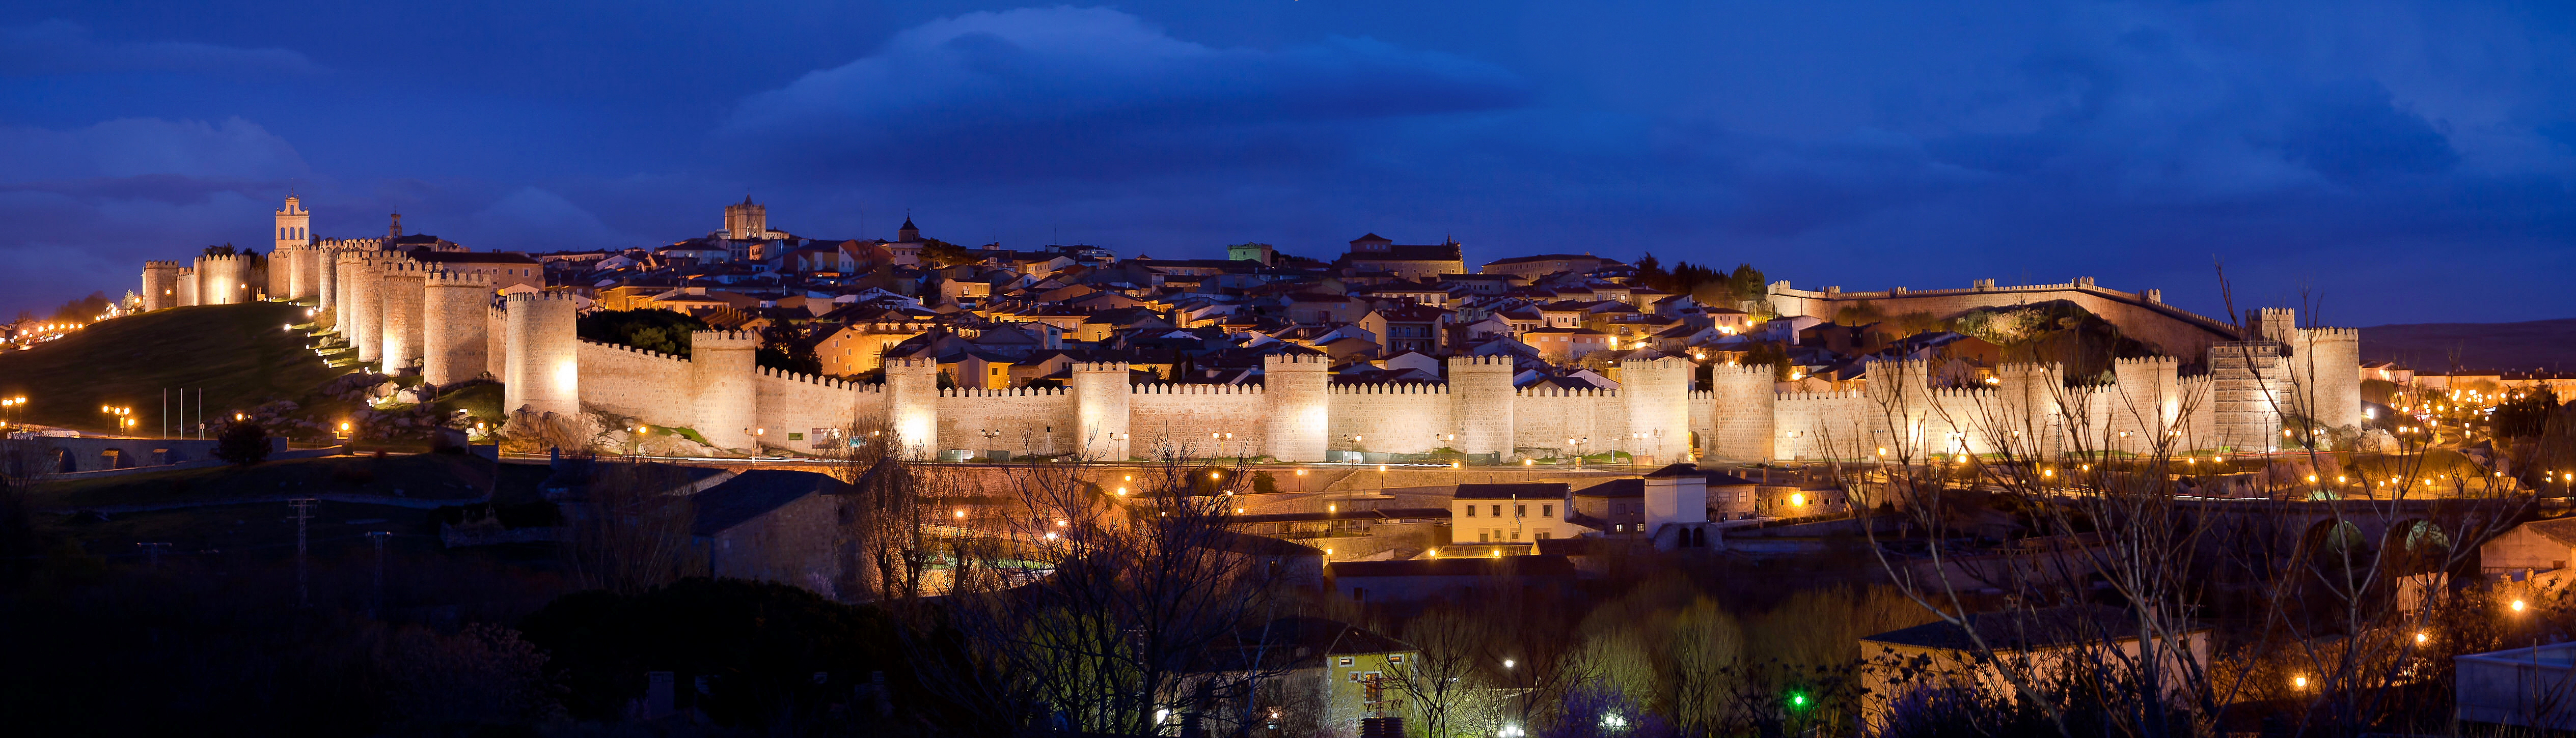 Avila Spain  city photos gallery : Panoramica nocturna de la Ciudad de Ávila Wikimedia ...